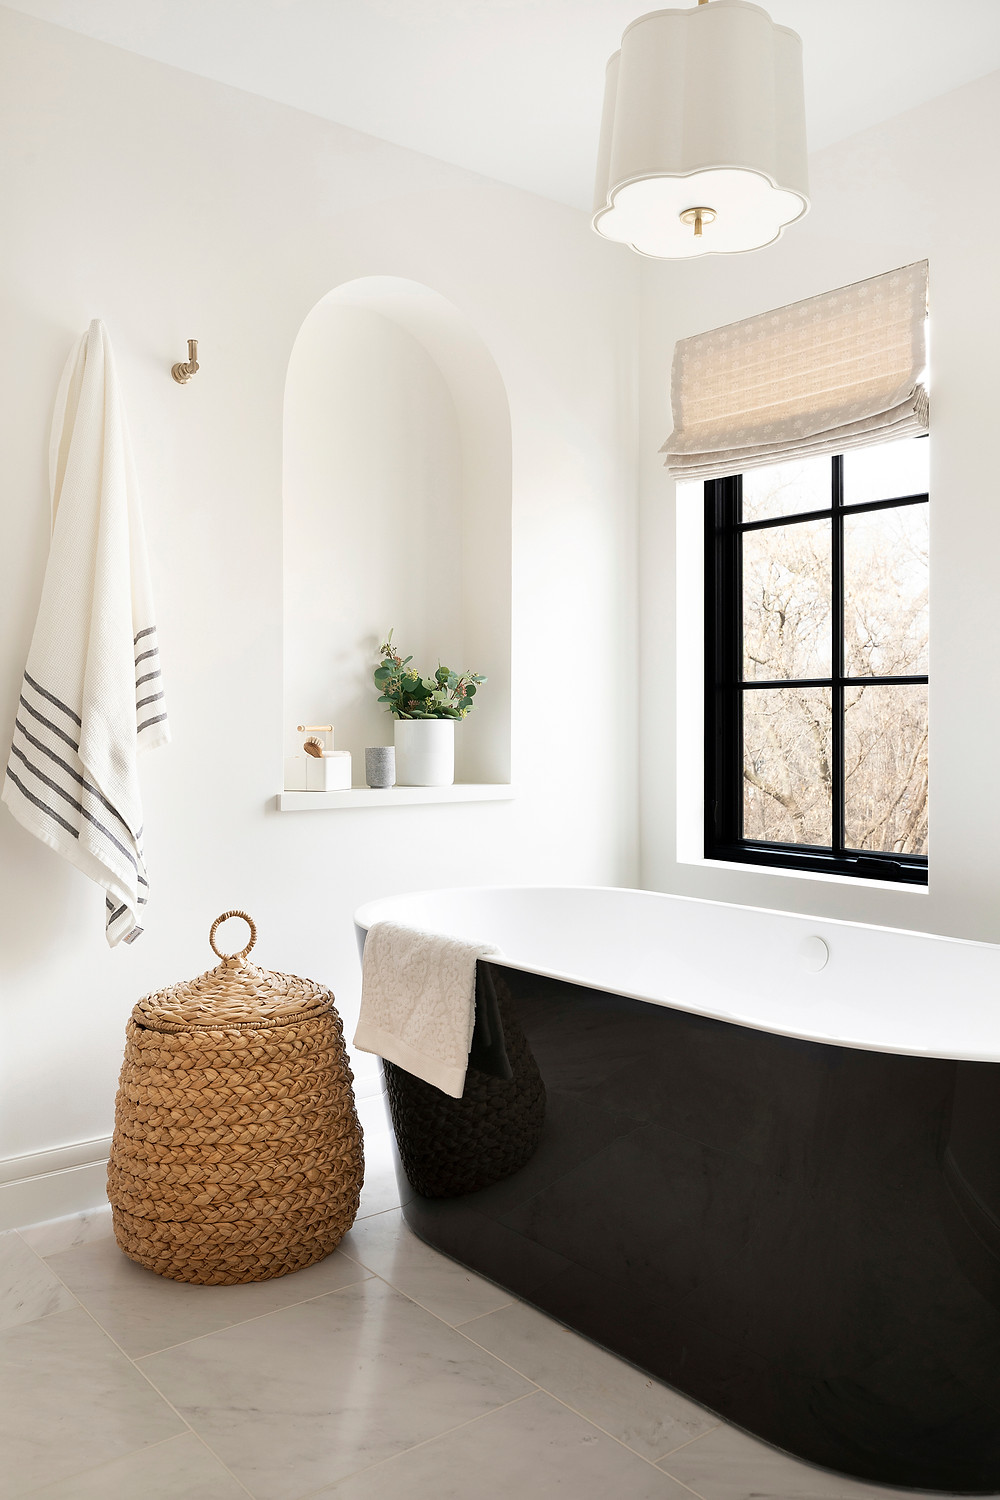 Owner's Bath, arched shelving and black freestanding bathtub